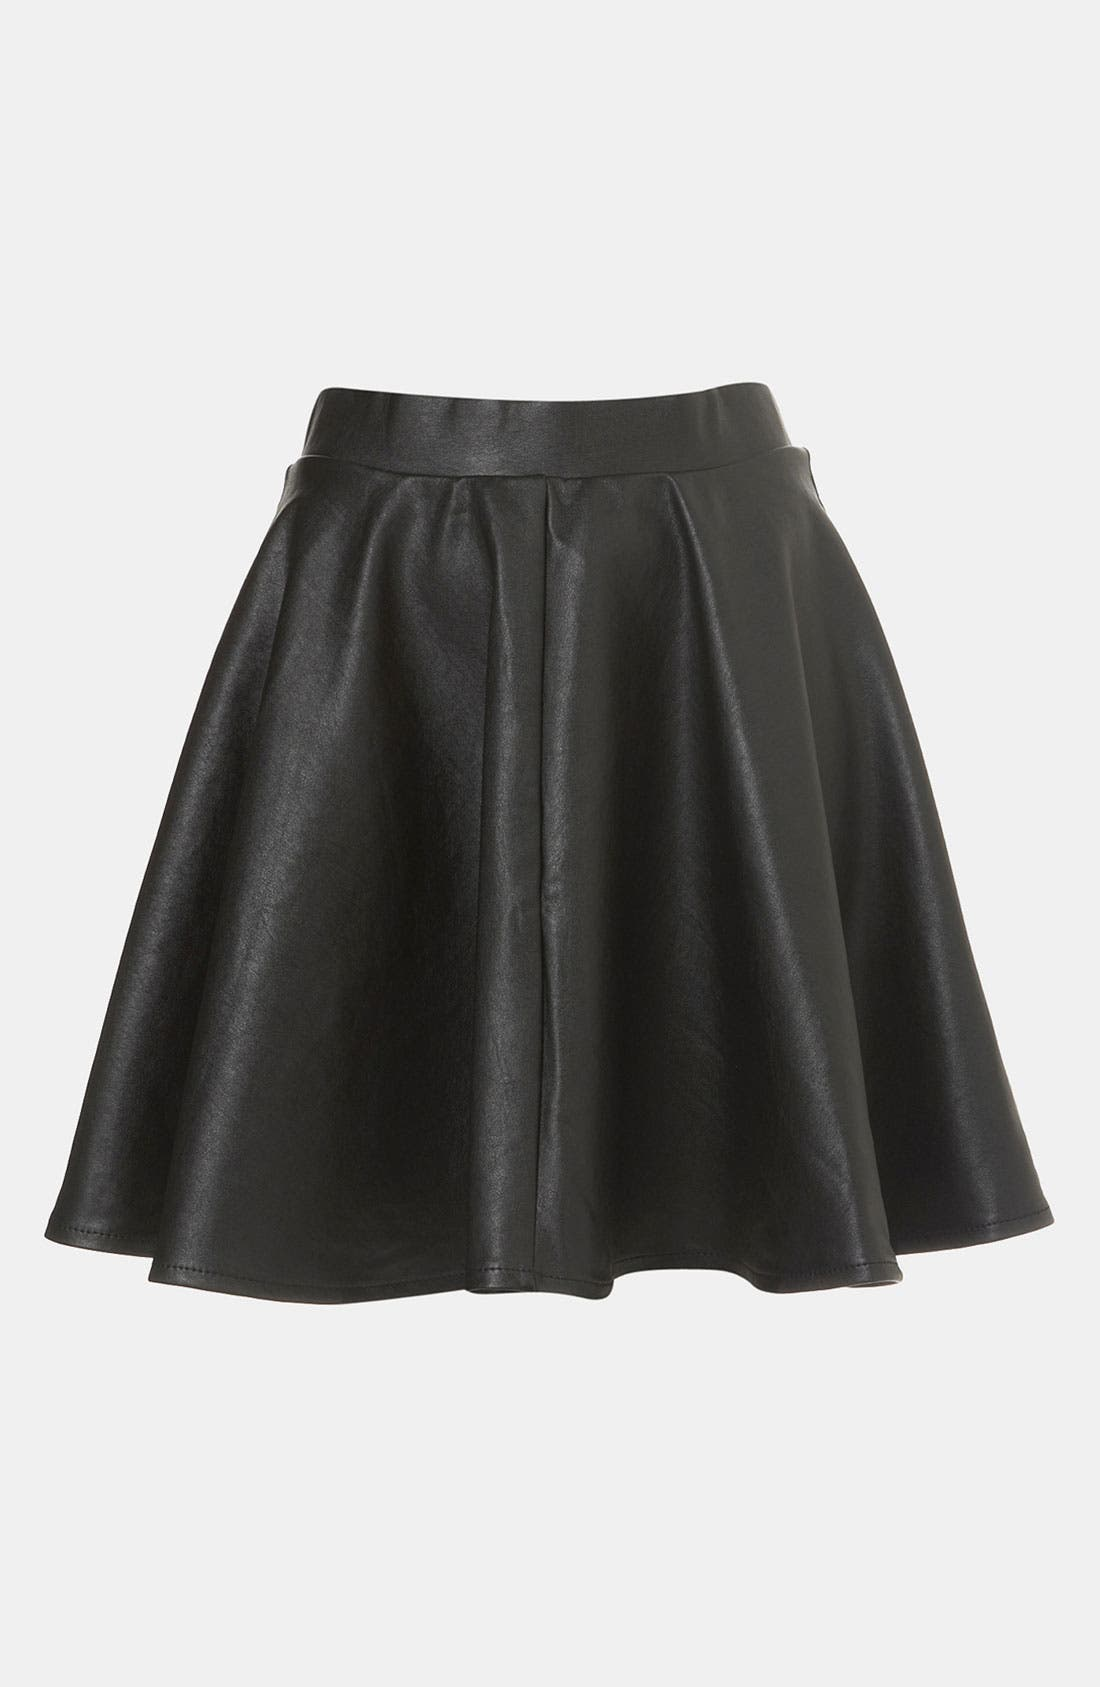 'Andie' Faux Leather Skater Skirt, Main, color, 001